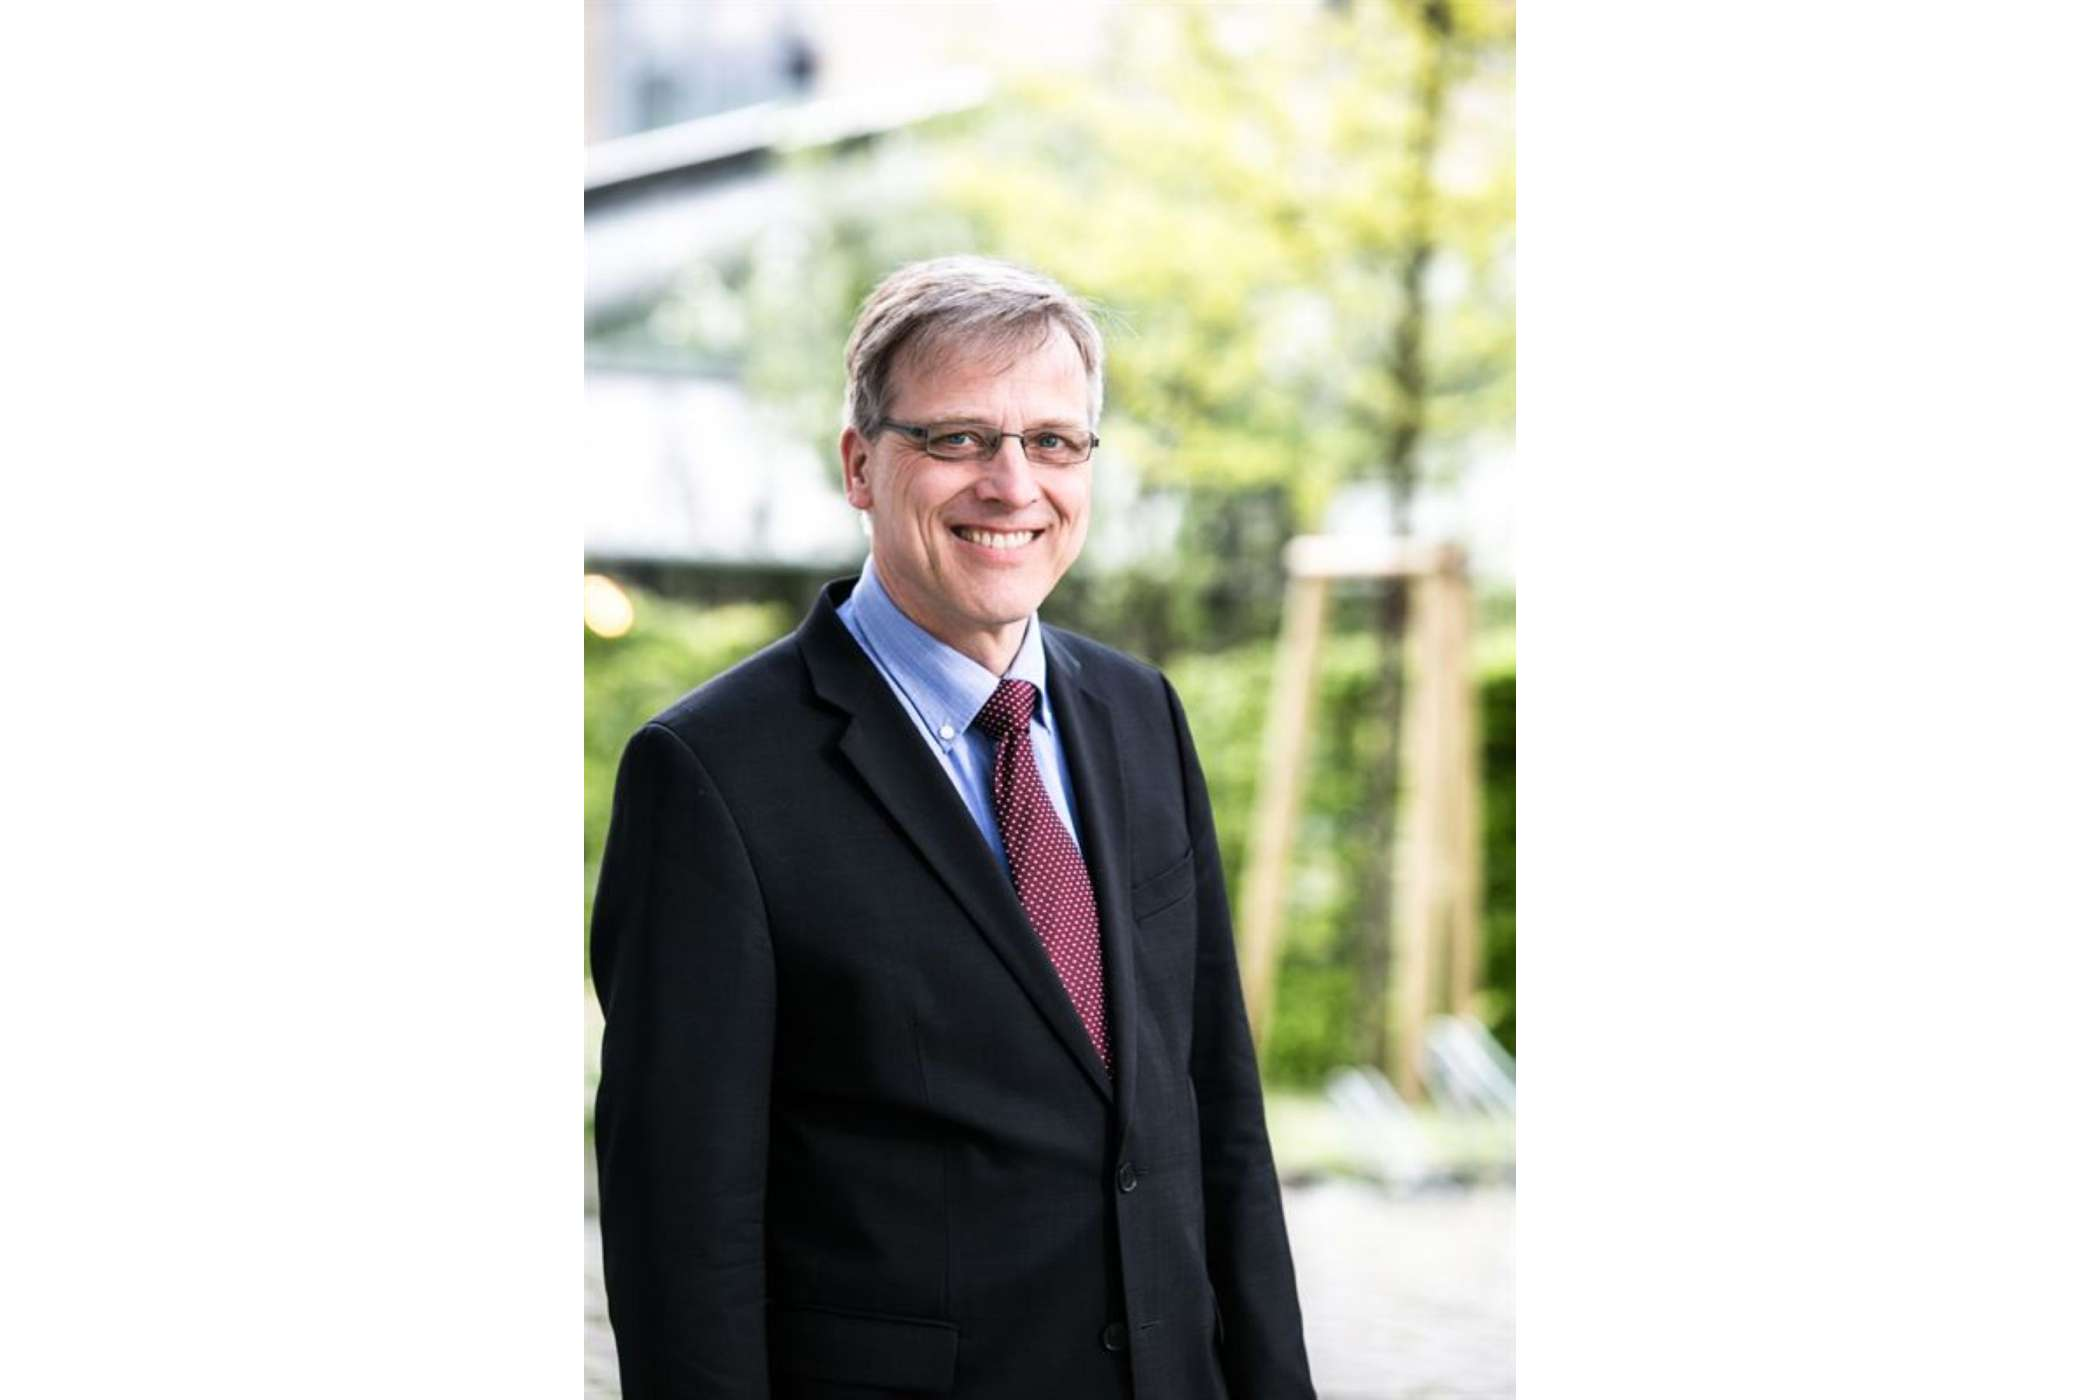 Stolzer Projektleiter: Prof. Dr. Christoph Walther, Head of Global Research bei PTV. | Foto: PTV Group